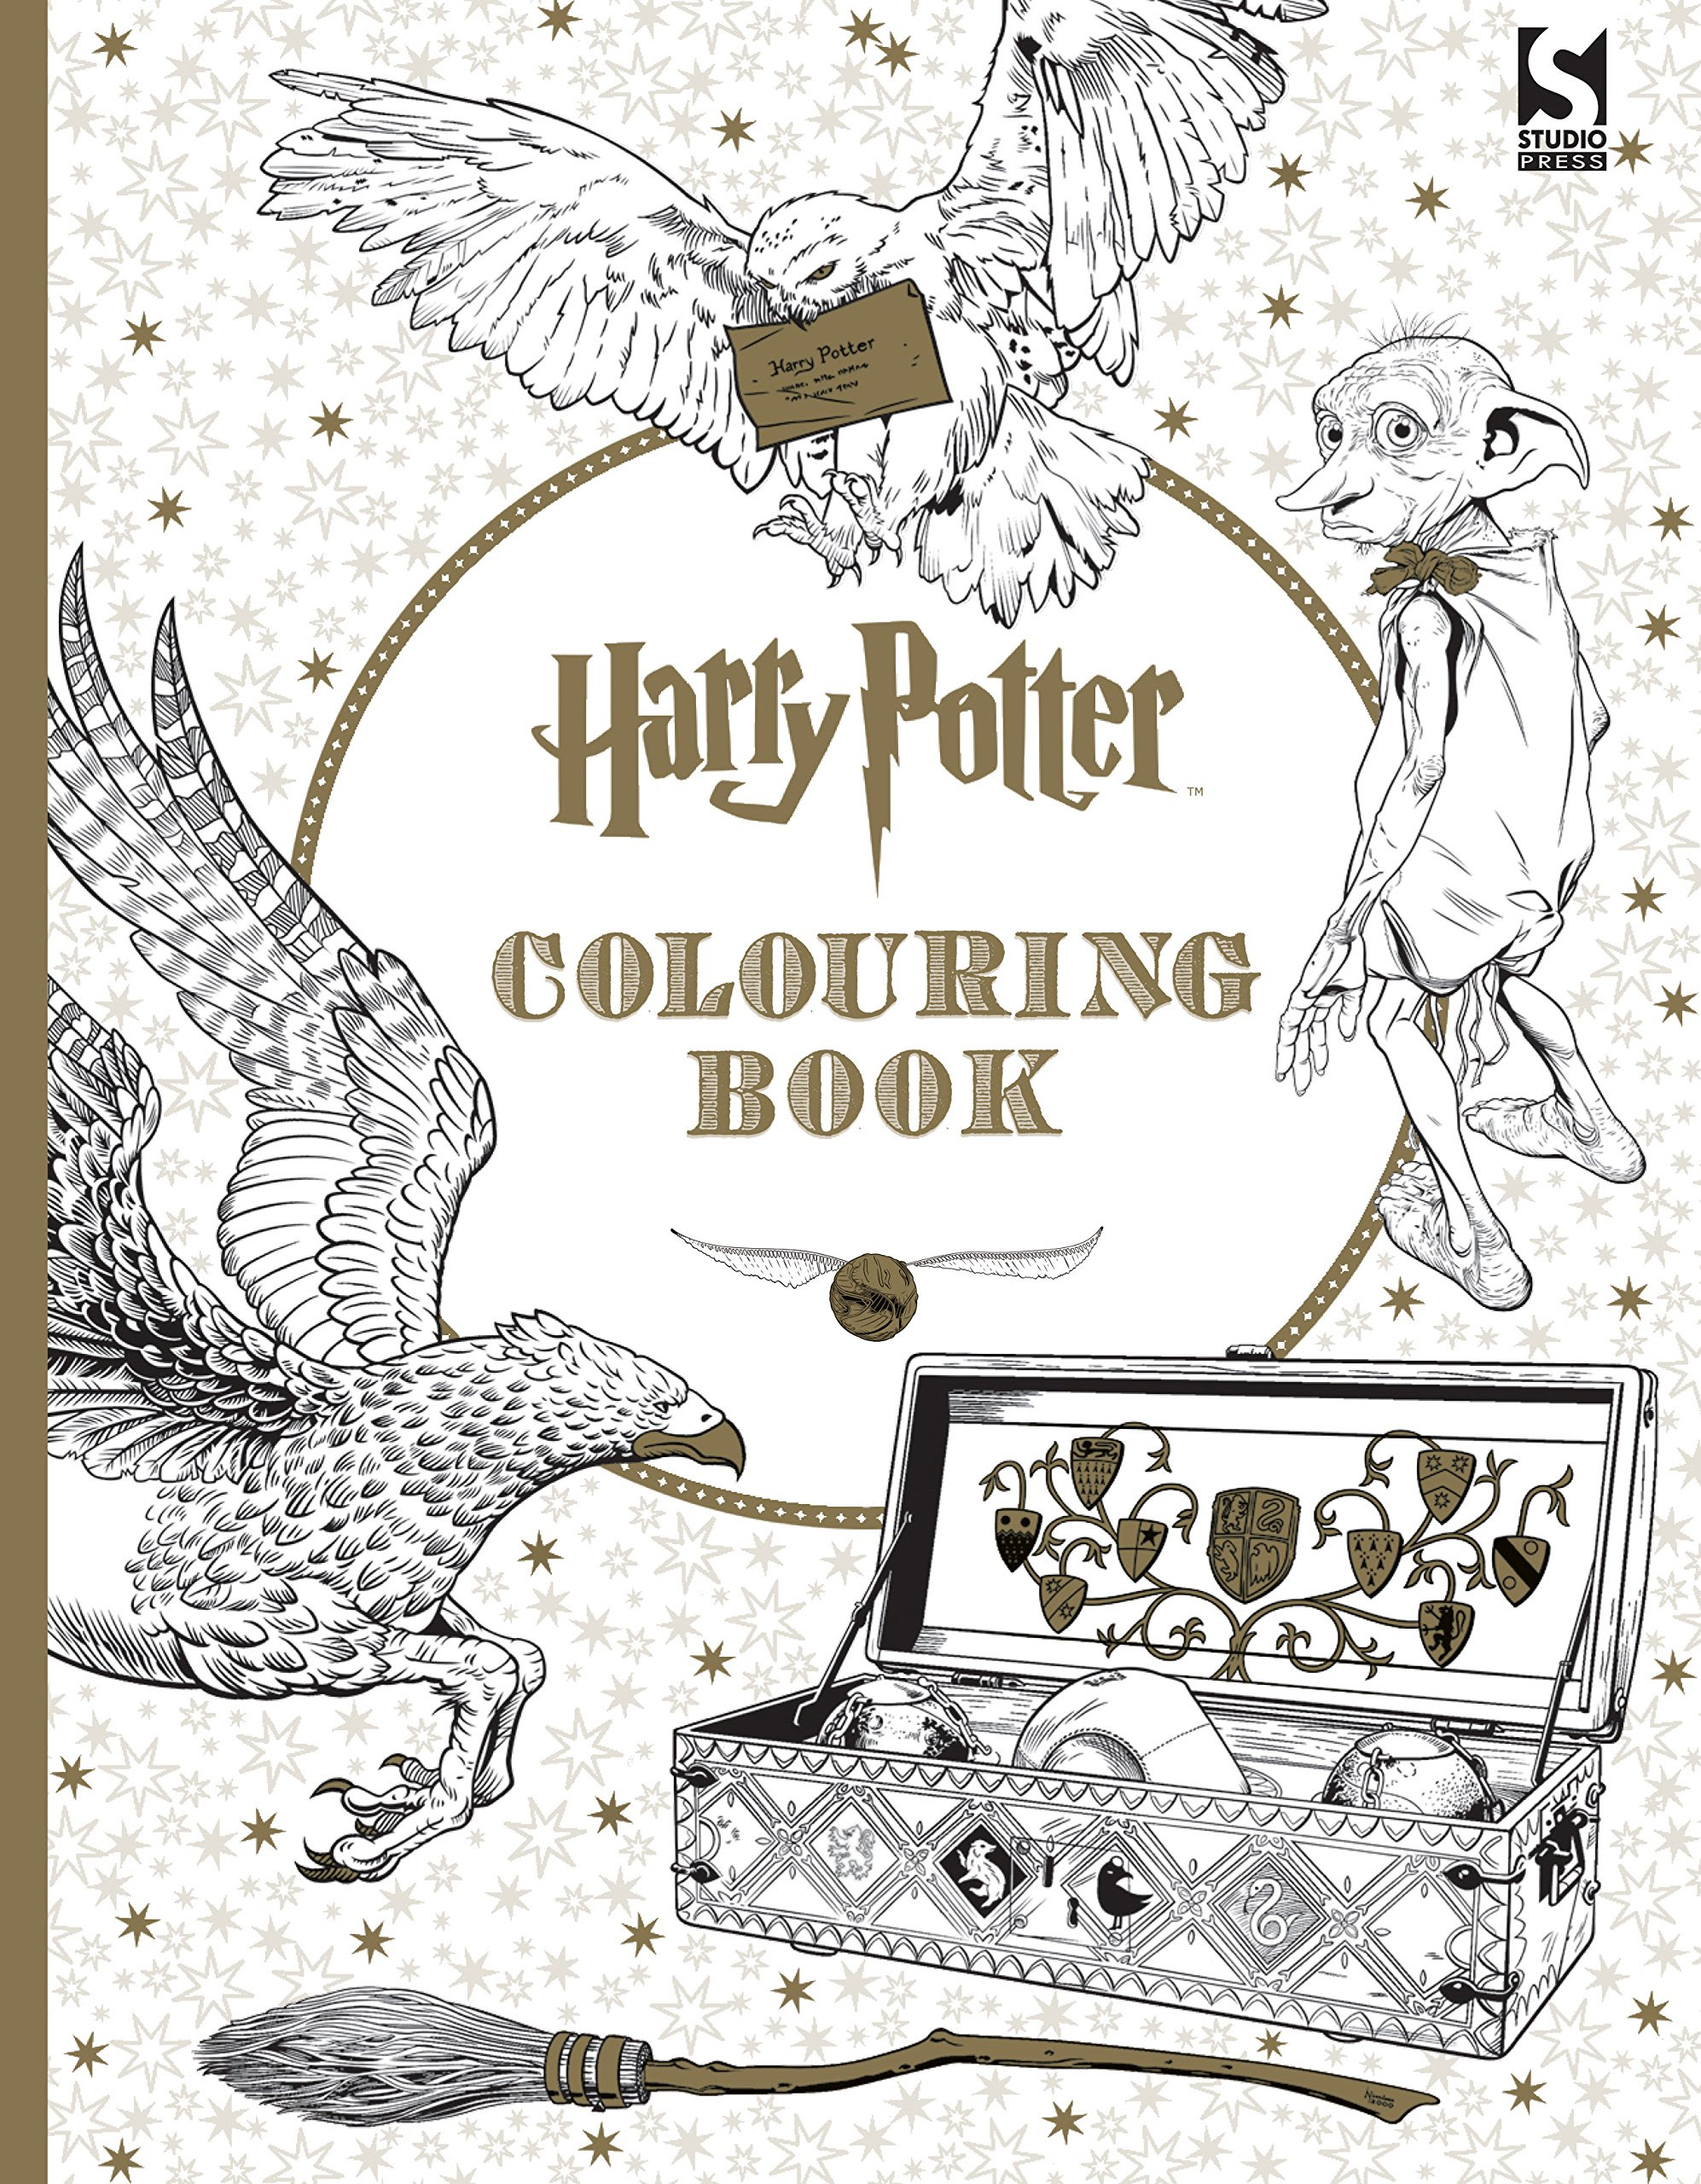 http://www.amazon.it/Harry-Potter-Colouring-Warner-Brothers/dp/1783705485/ref=sr_1_1?s=english-books&ie=UTF8&qid=1450276441&sr=1-1&keywords=harry+potter+colouring+book